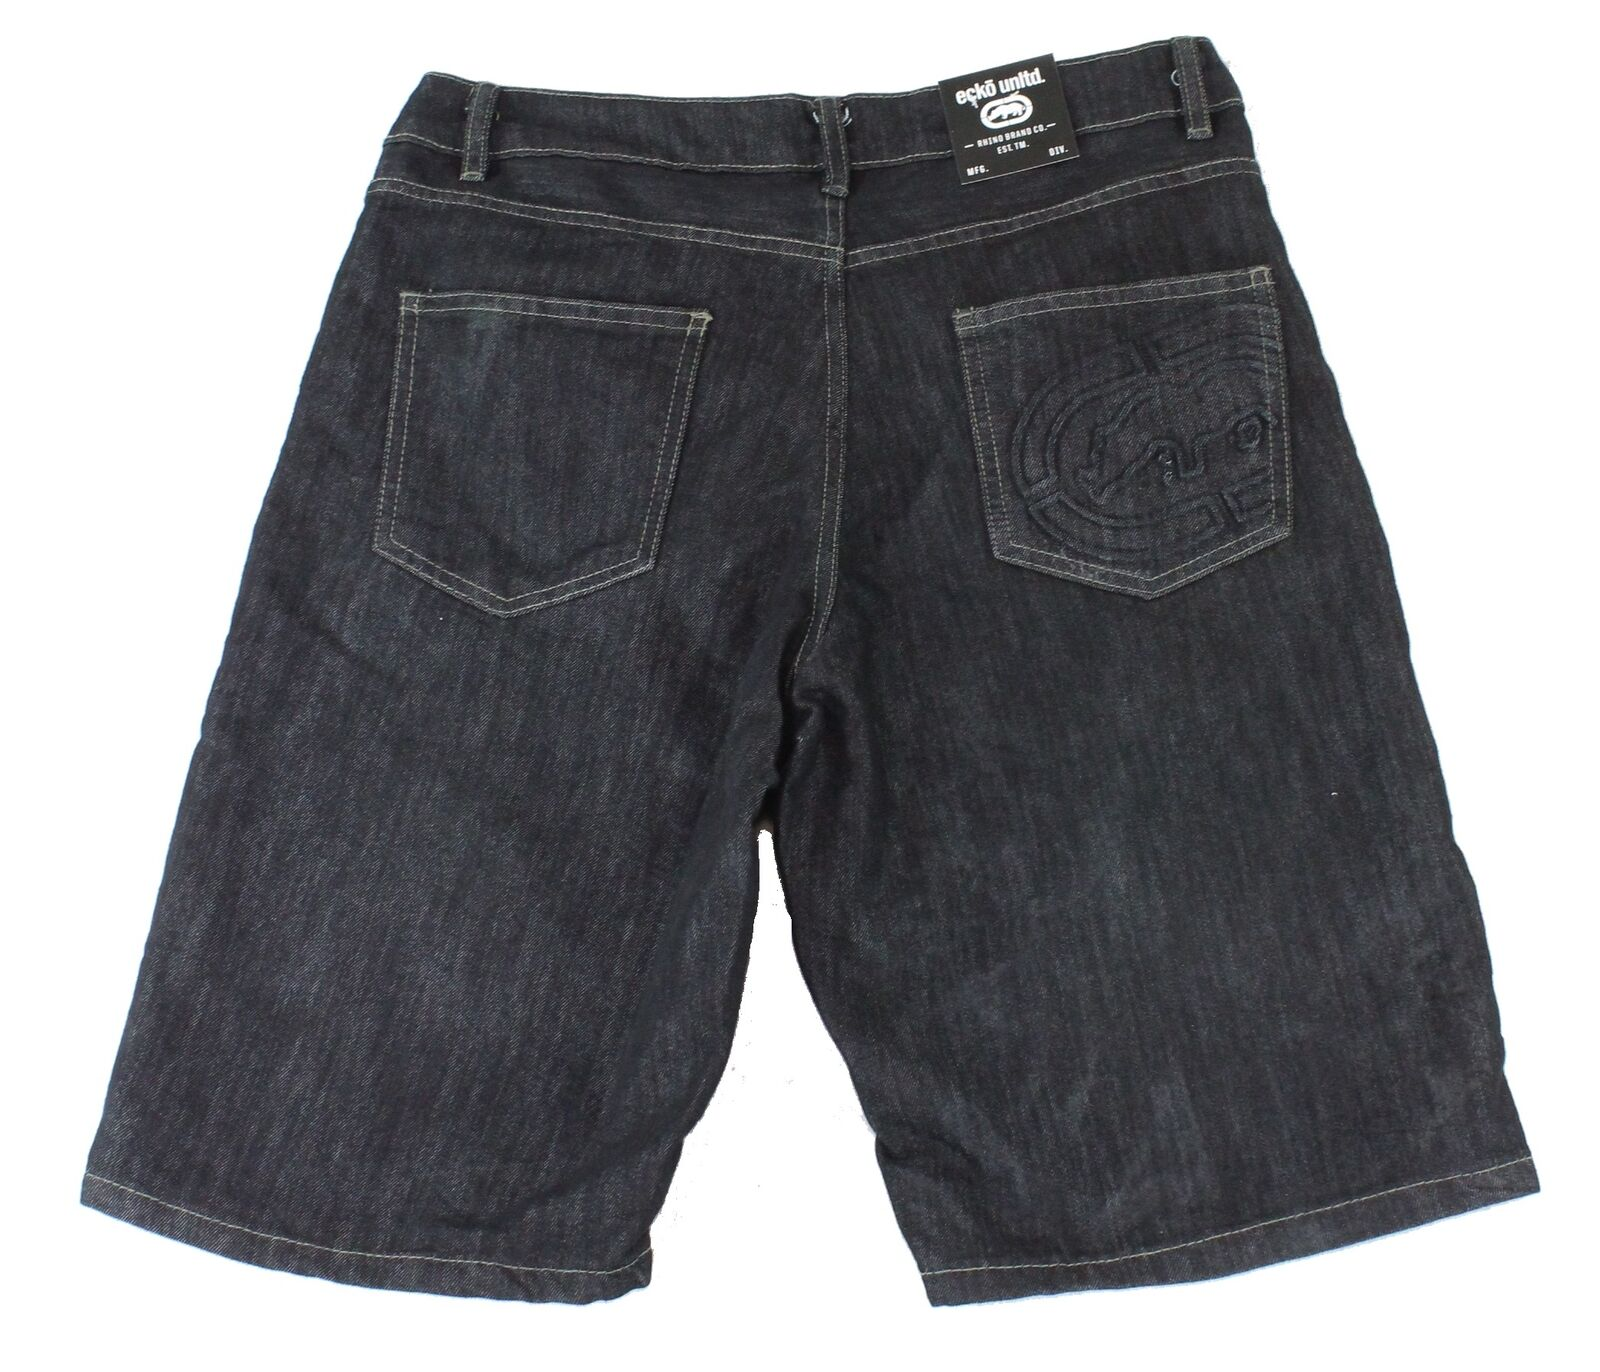 New-Ecko-Unltd-Mens-Shorts-Blue-Size-38-Denim-759-Relaxed-Fit-Embossed-48-148 thumbnail 2